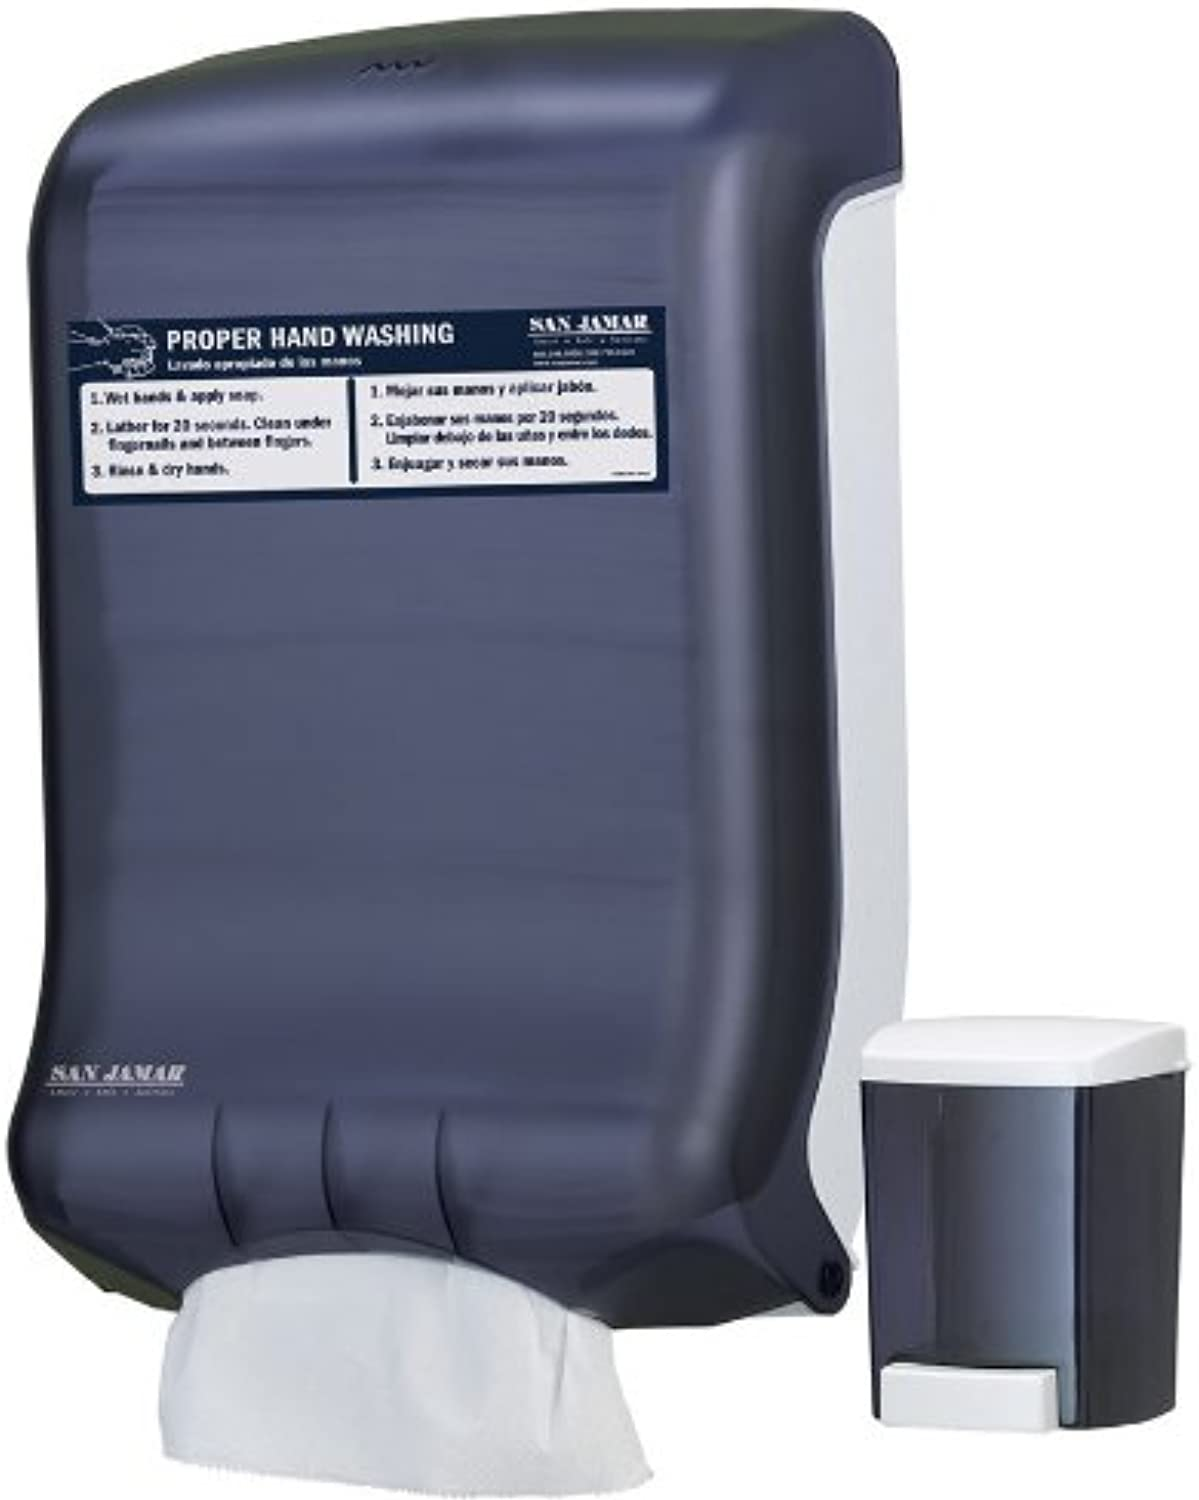 San Jamar T1730 Handwashing Station Value Pack, Black Pearl